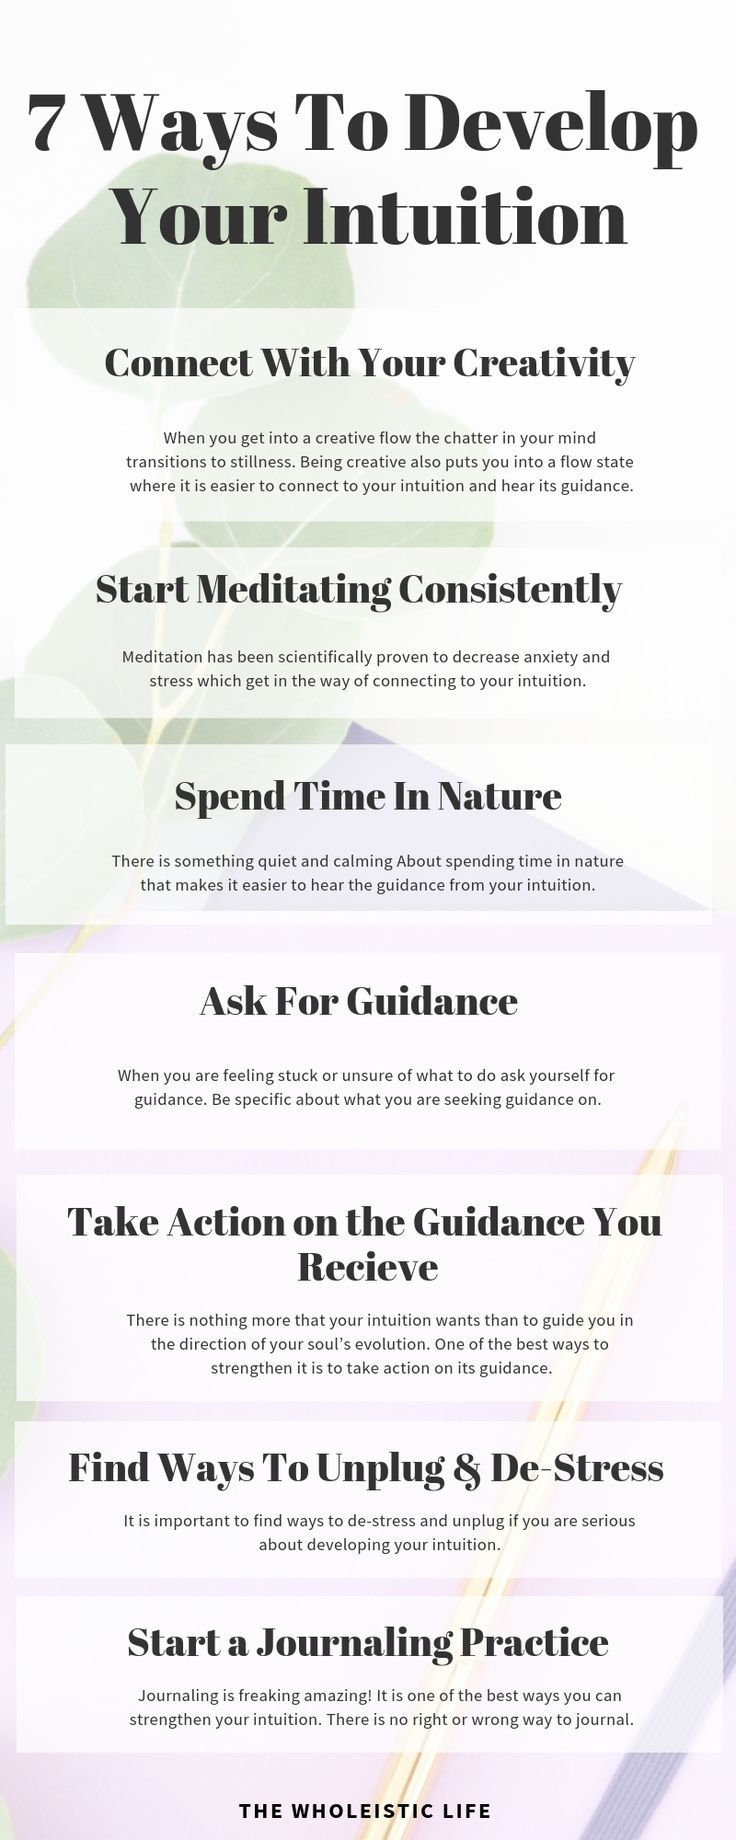 how to build your intuitive powers how to enhance my intuition how to improve intuition skills how to develop your intuitive abilities